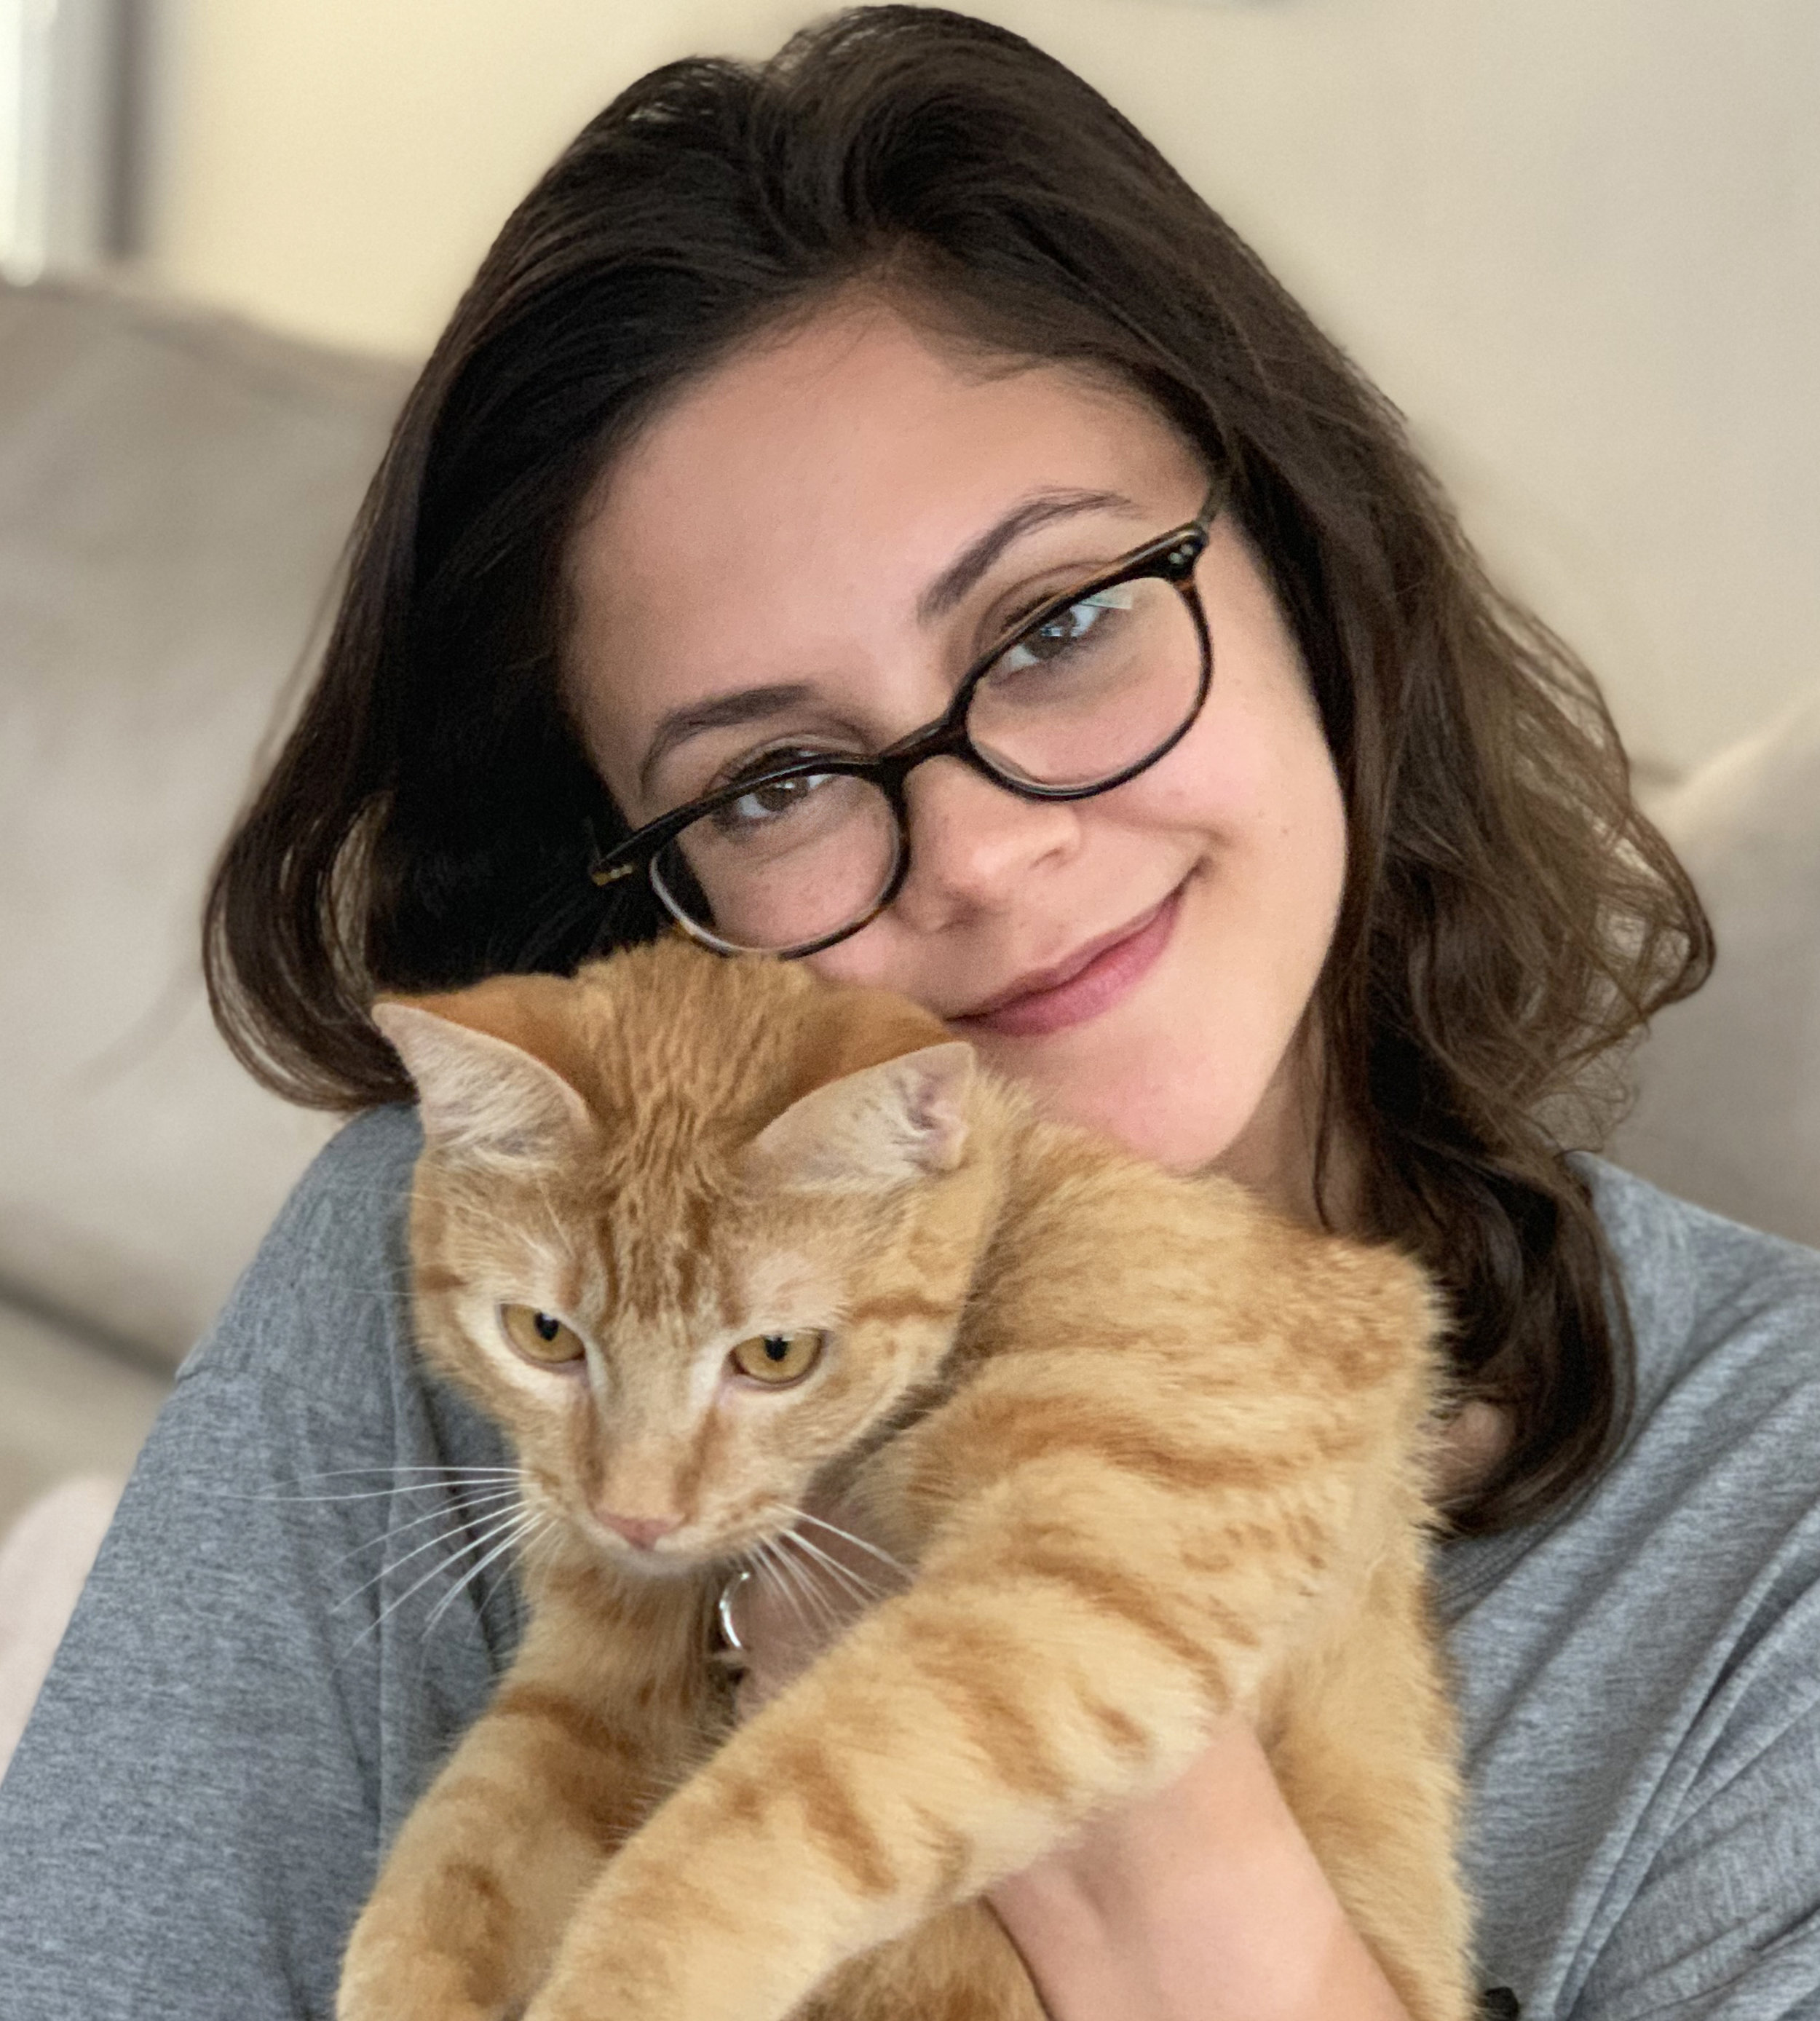 Andrea with her cat Peanut Butter.